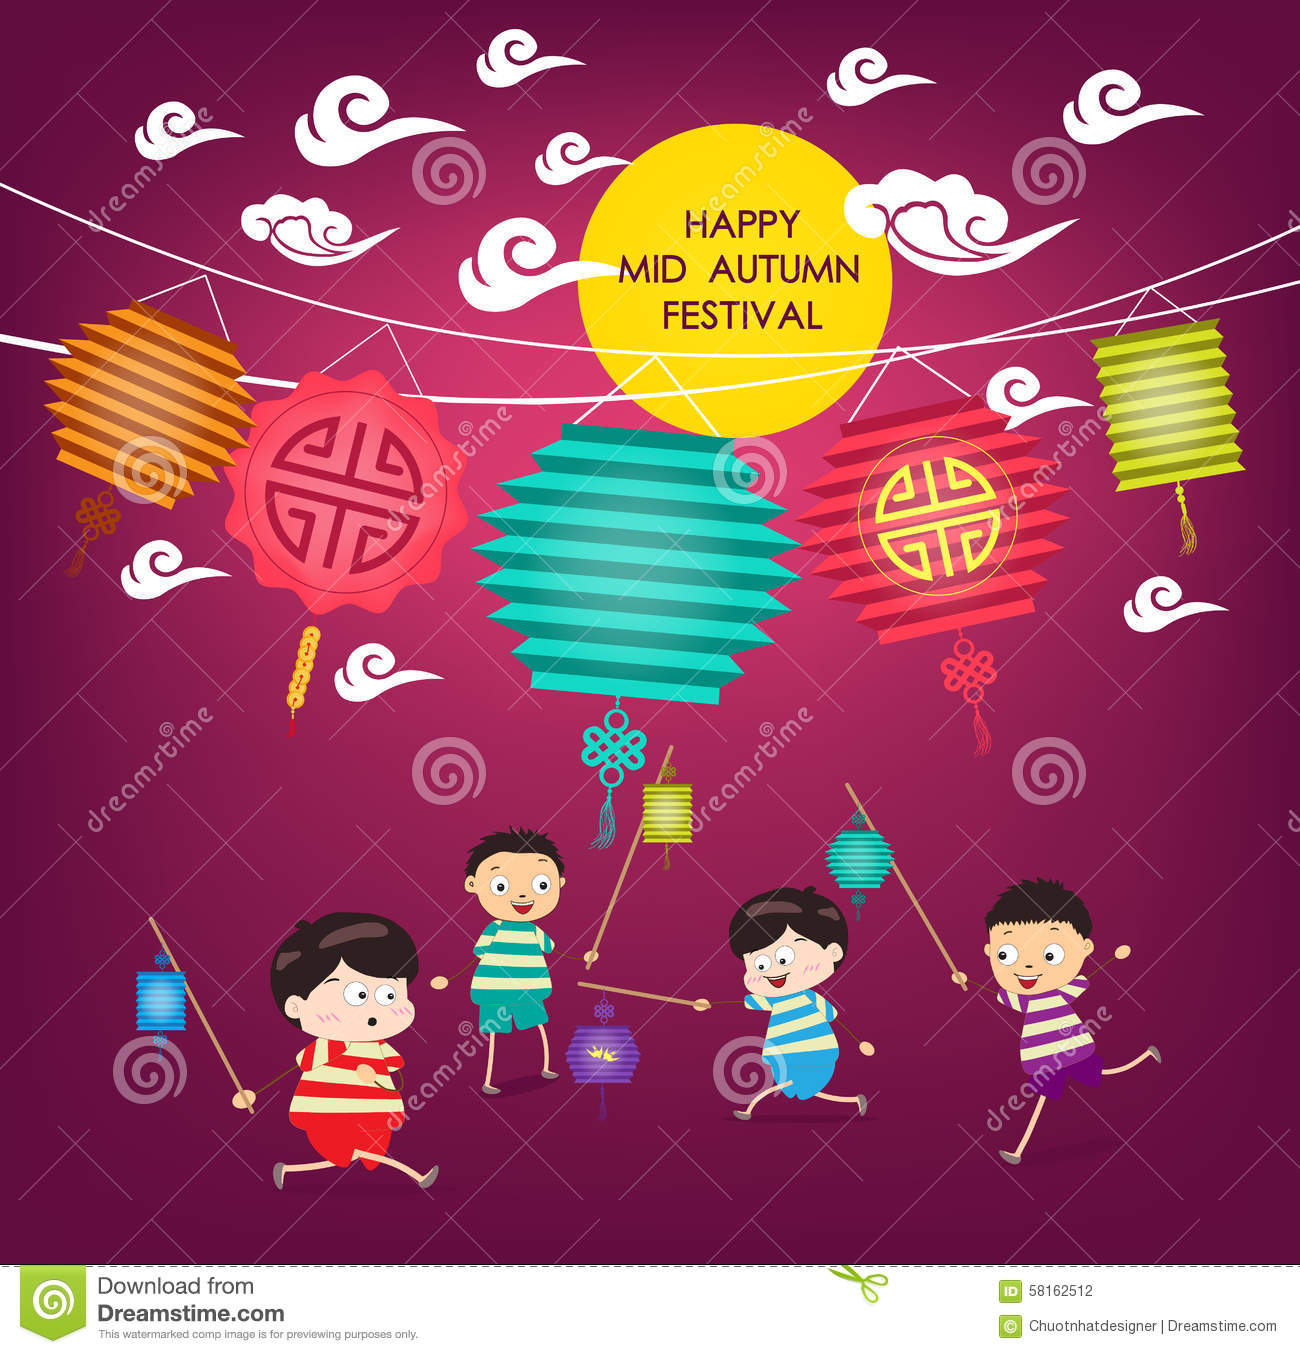 Mid autumn festival background with happy kids playing lanterns royalty free vector download mid autumn toneelgroepblik Image collections